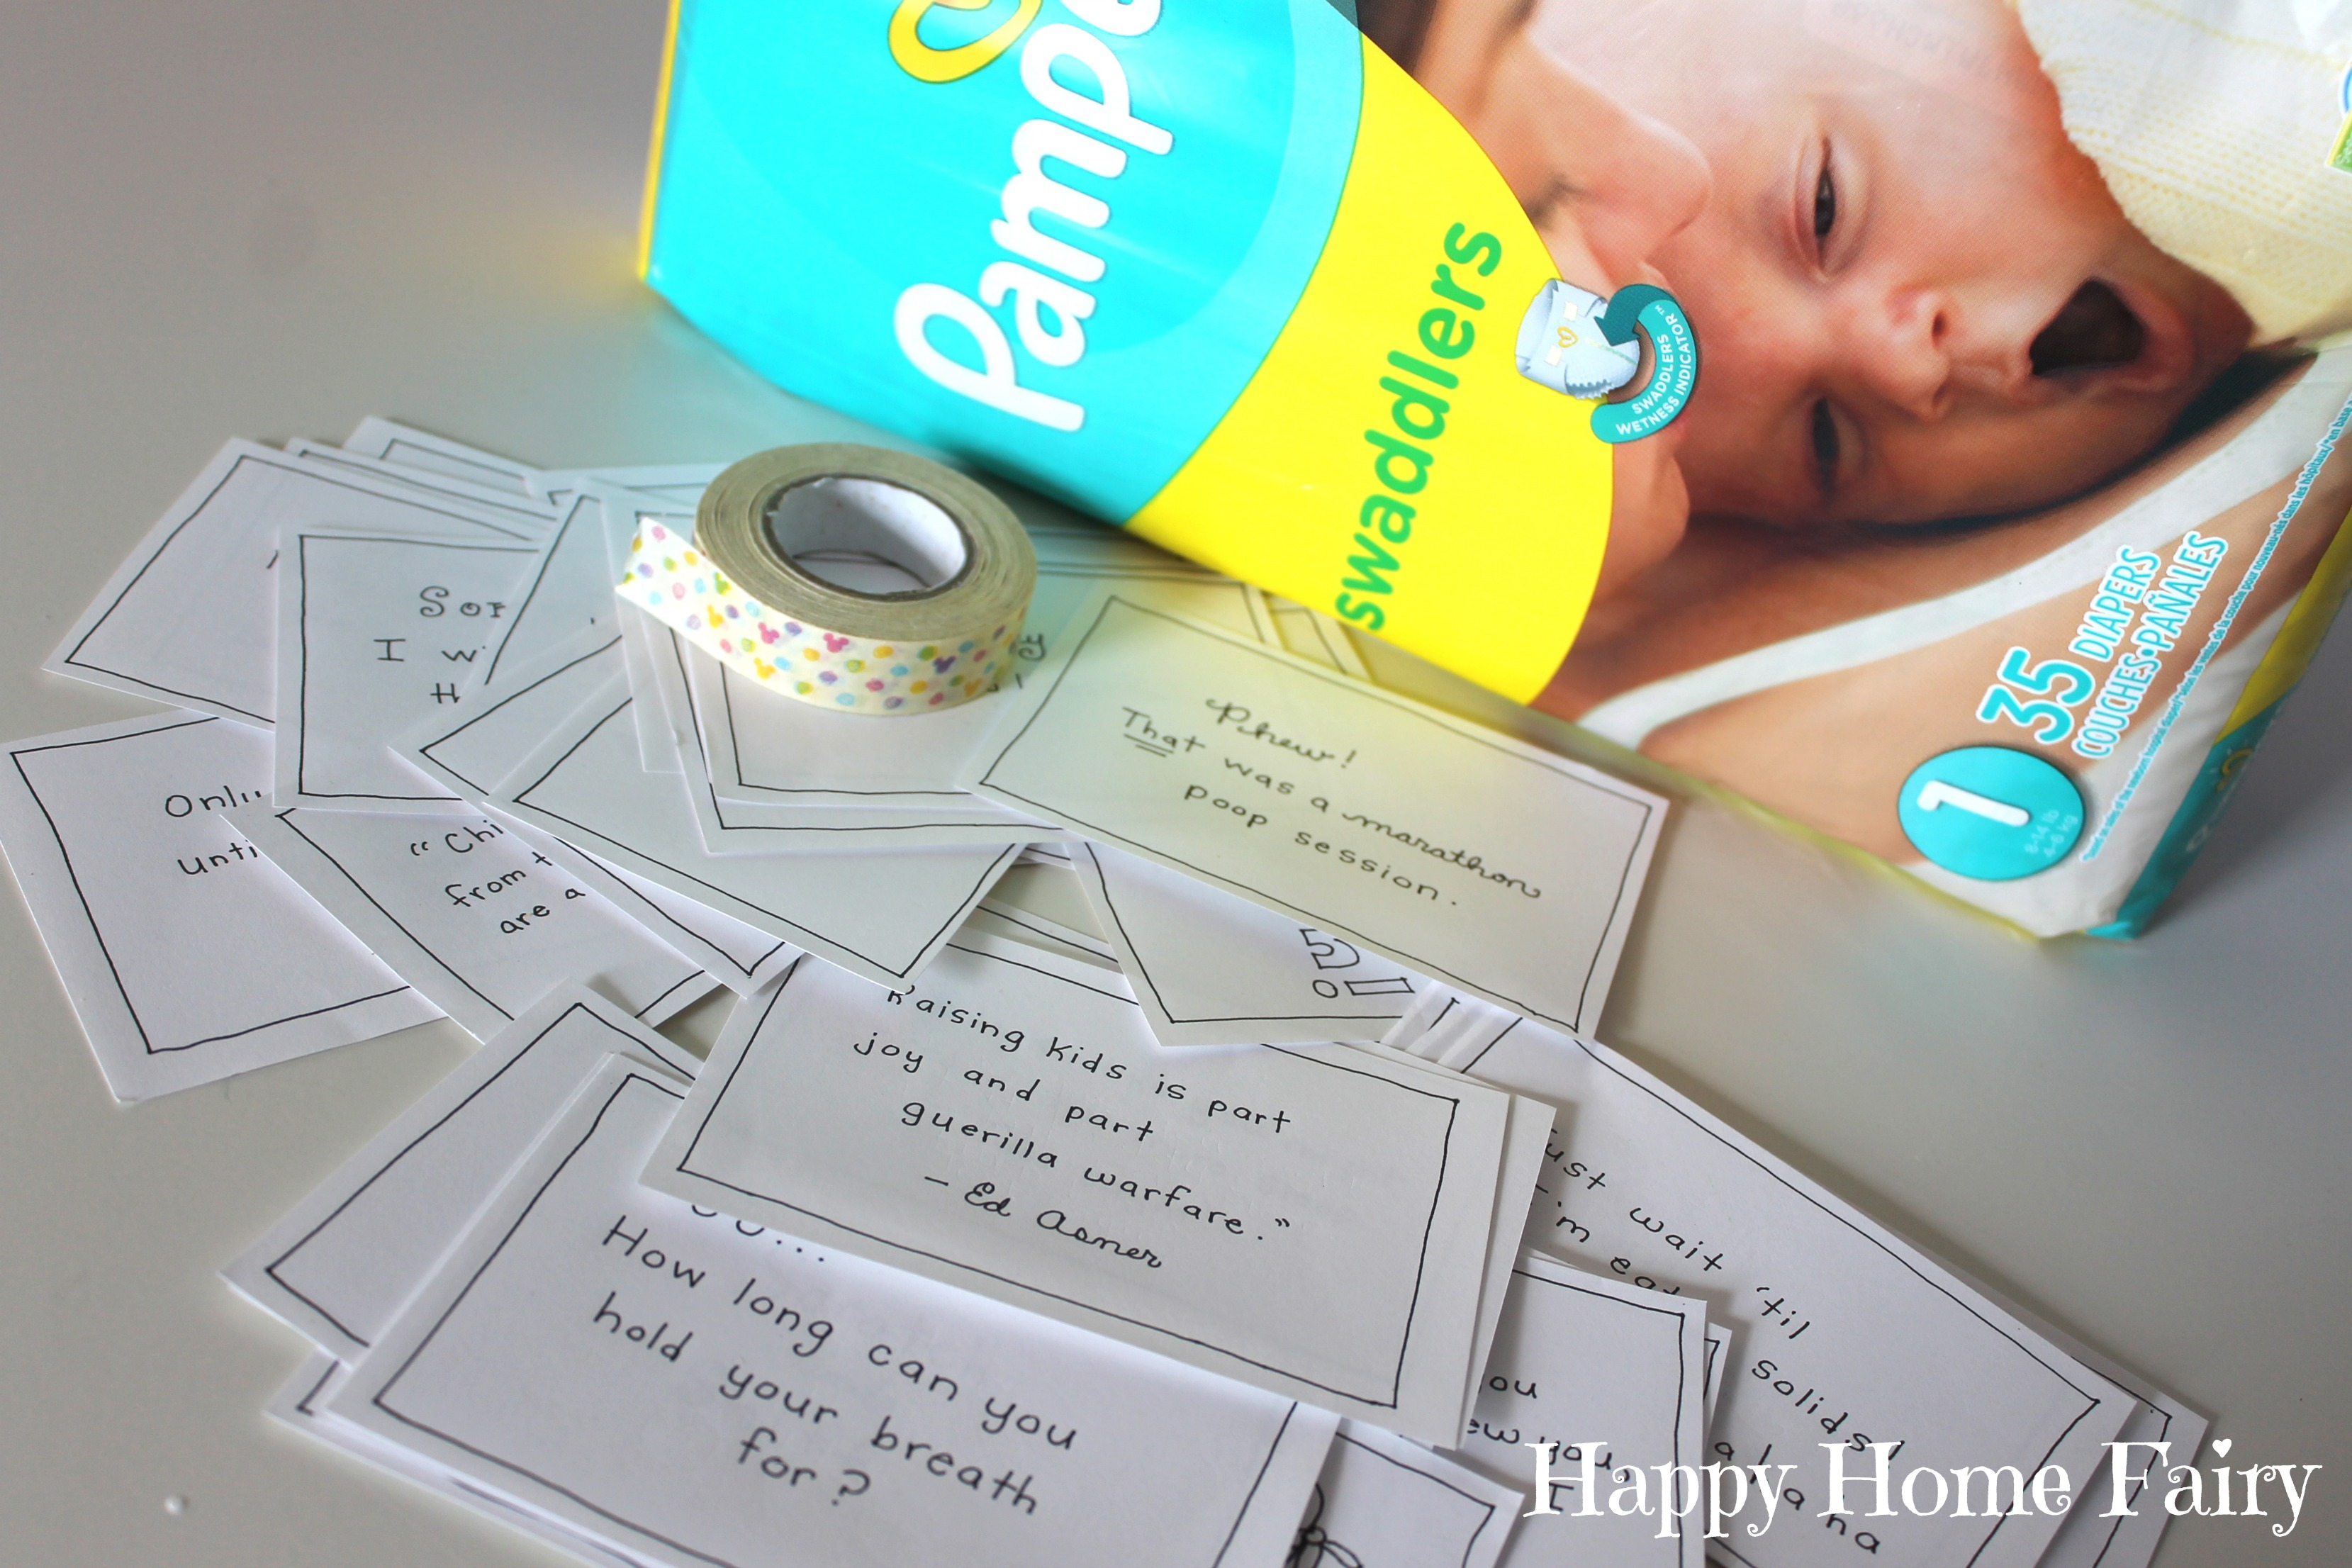 image about Late Night Diaper Messages Free Printable identified as Midnight Messages for Contemporary Mommies - Totally free Printable! - Satisfied